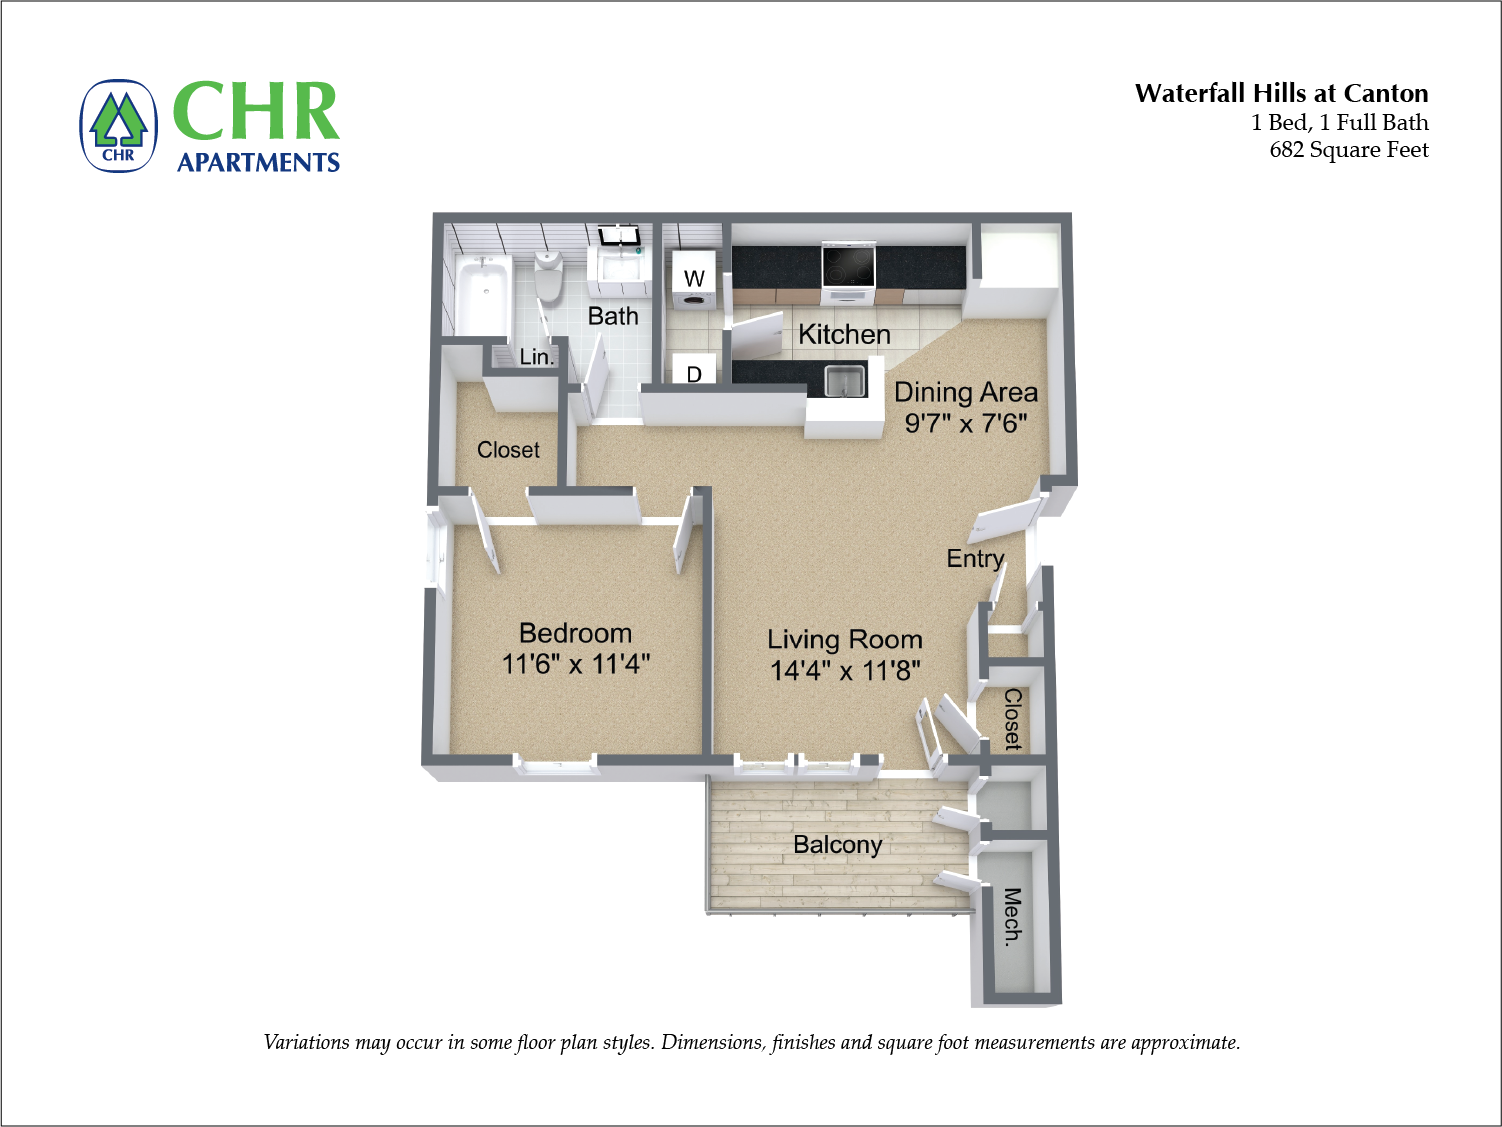 Click to view 1 Bedroom with Washer/Dryer floor plan gallery